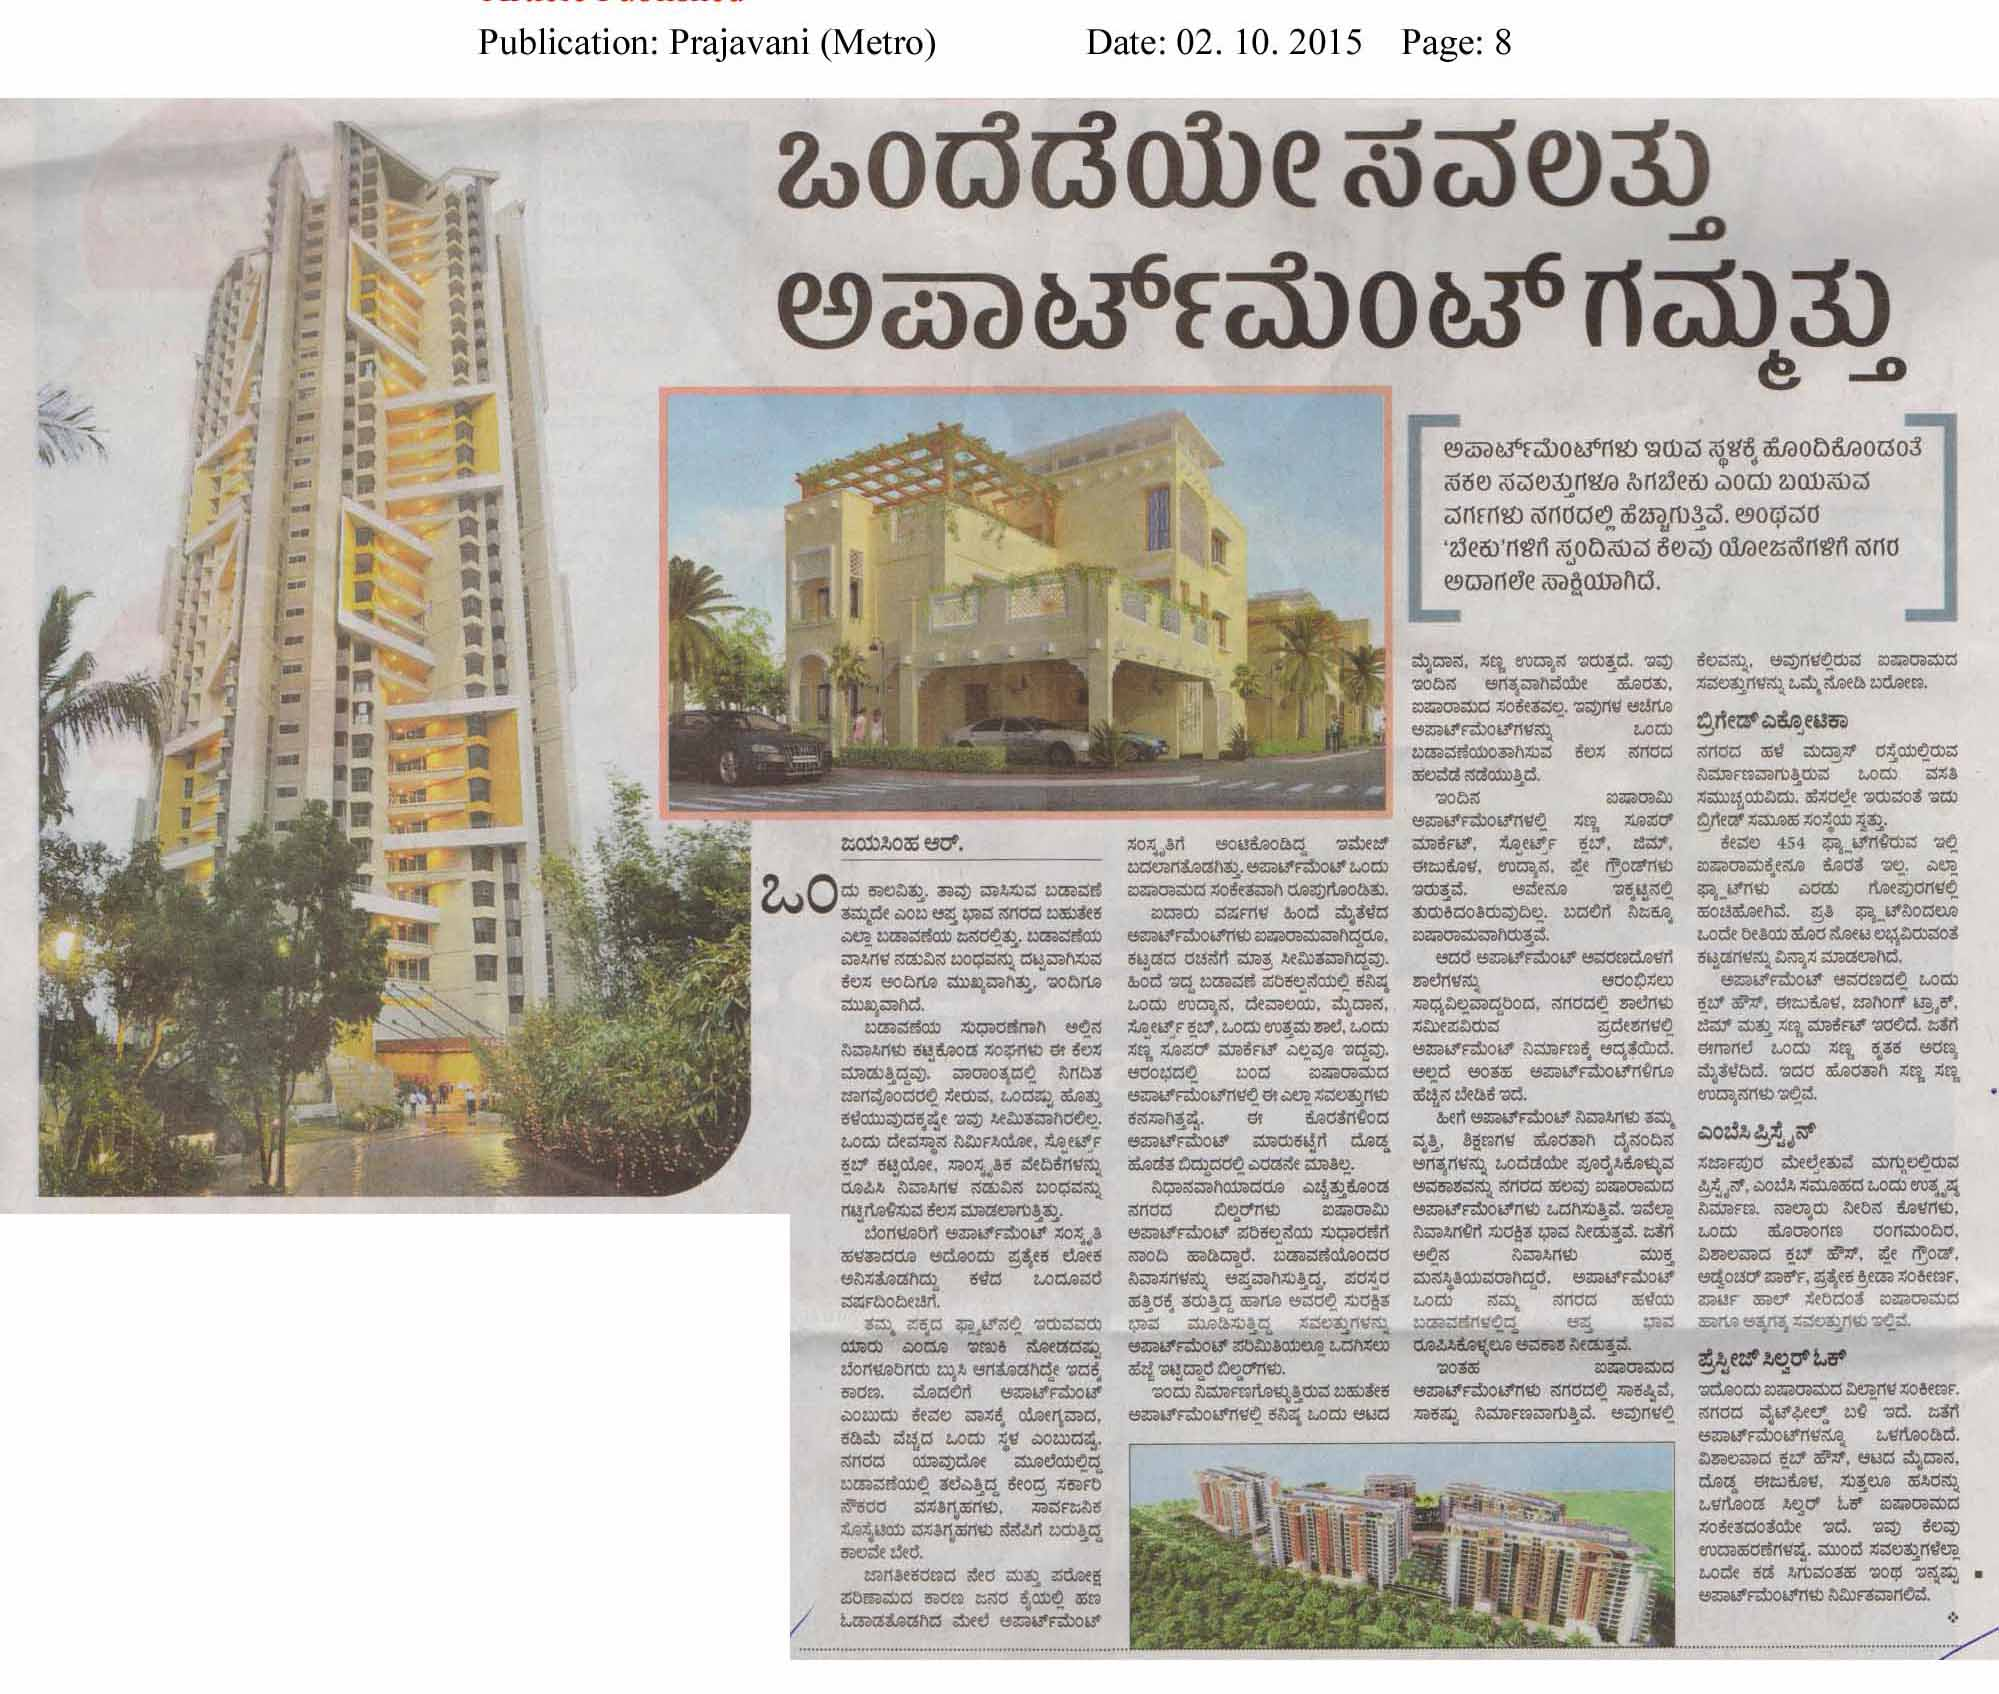 In apartments you get all the facilities in one place - Prajavani (Metro Bangalore)